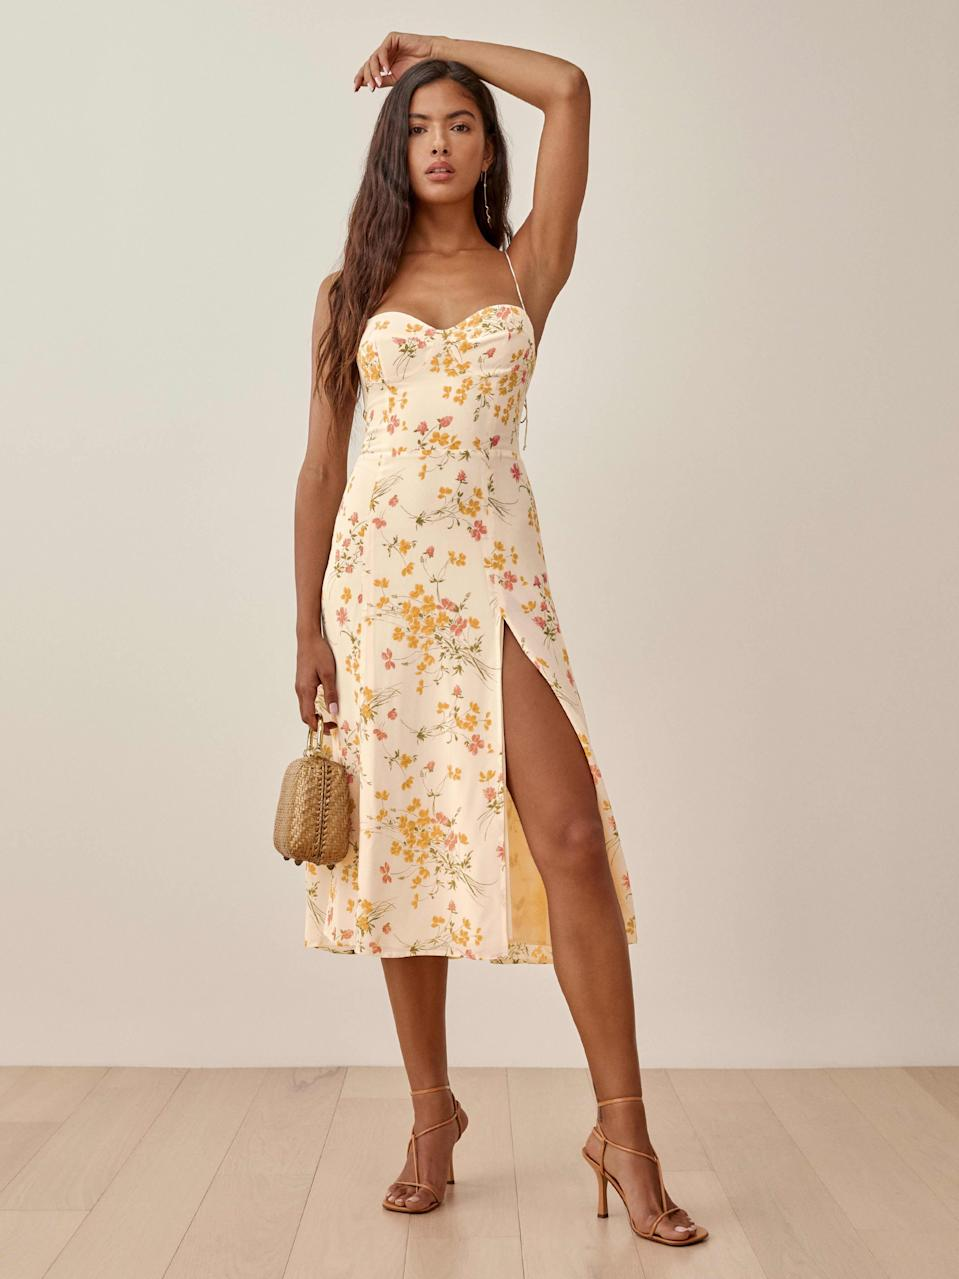 """The cost-per-wear value can't be beat, since you'll definitely find another occasion (or five) to wear this floral Reformation dress to. $218, Reformation. <a href=""""https://www.thereformation.com/products/juliette-dress"""" rel=""""nofollow noopener"""" target=""""_blank"""" data-ylk=""""slk:Get it now!"""" class=""""link rapid-noclick-resp"""">Get it now!</a>"""